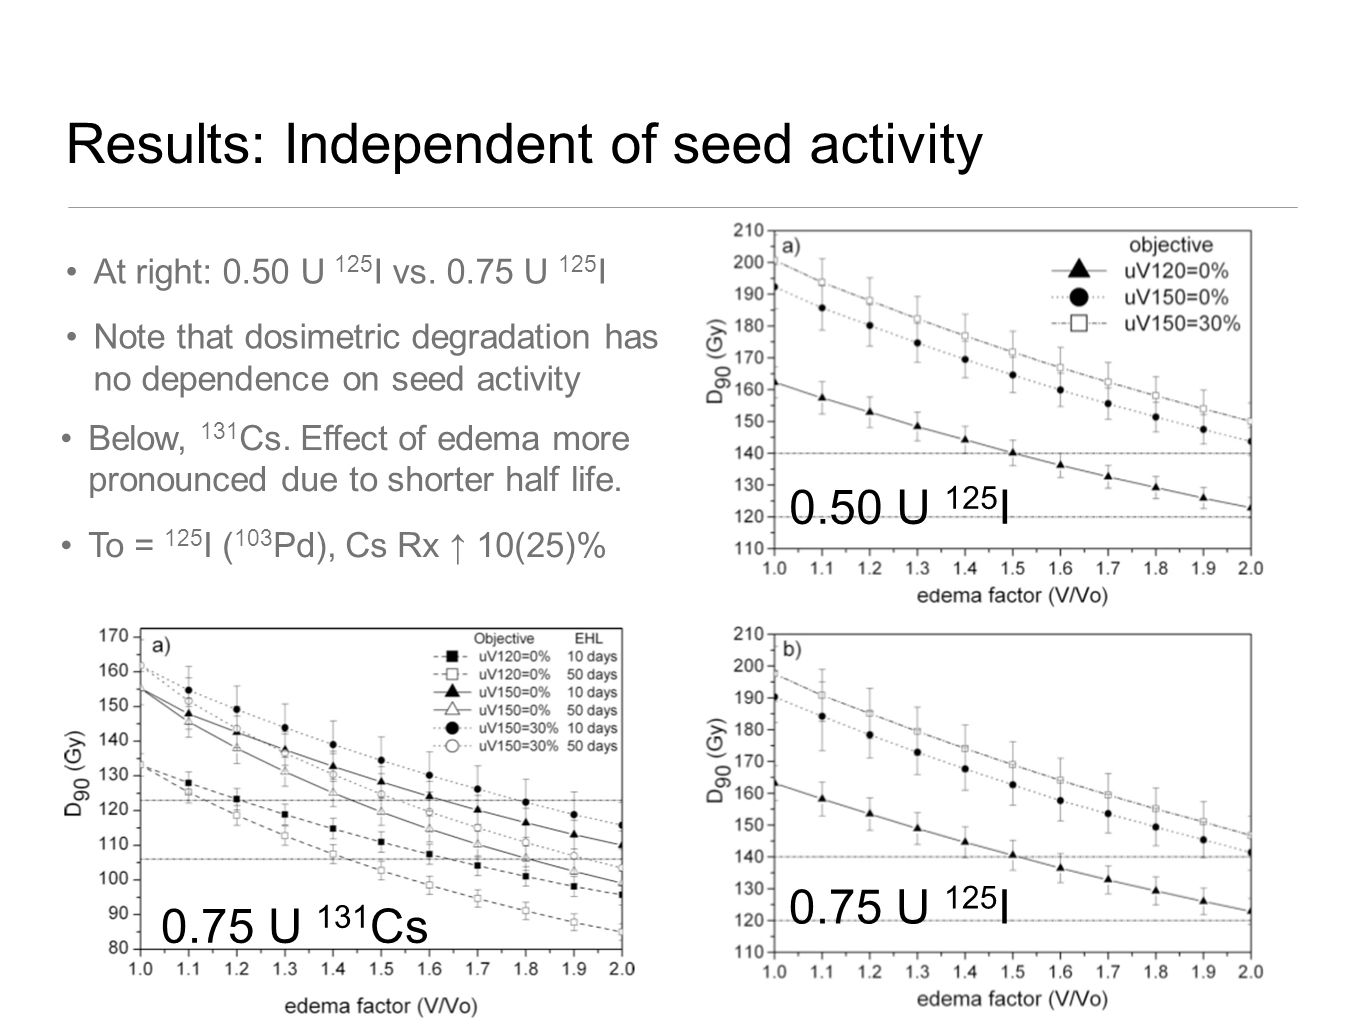 0.75 U 125 I 0.50 U 125 I At right: 0.50 U 125 I vs. 0.75 U 125 I Note that dosimetric degradation has no dependence on seed activity Results: Indepen